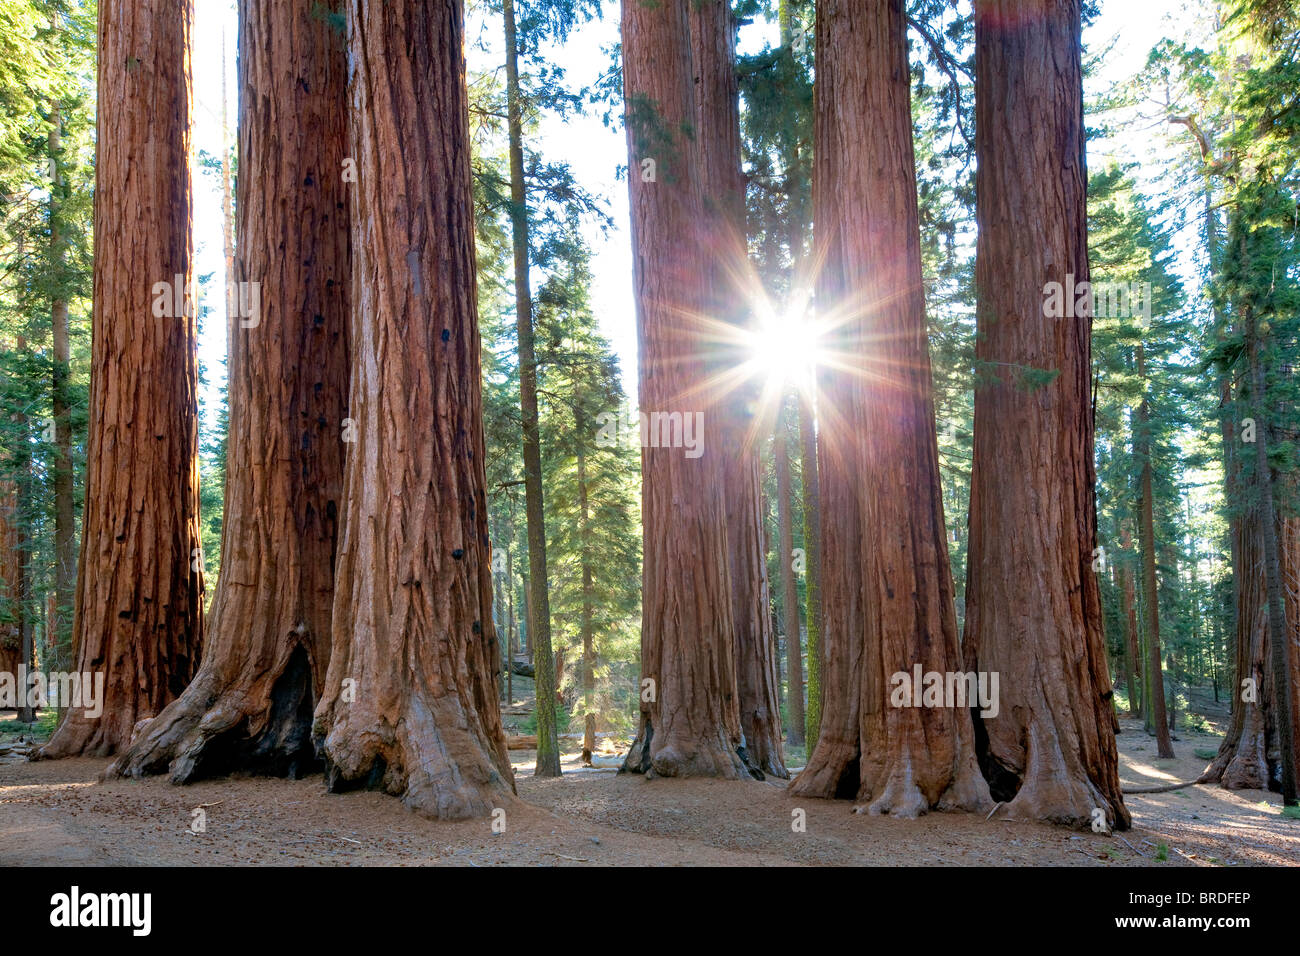 Sunburst through Giant Sequoia (Sequoiadendron giganteum) Sequoia National Park, California - Stock Image